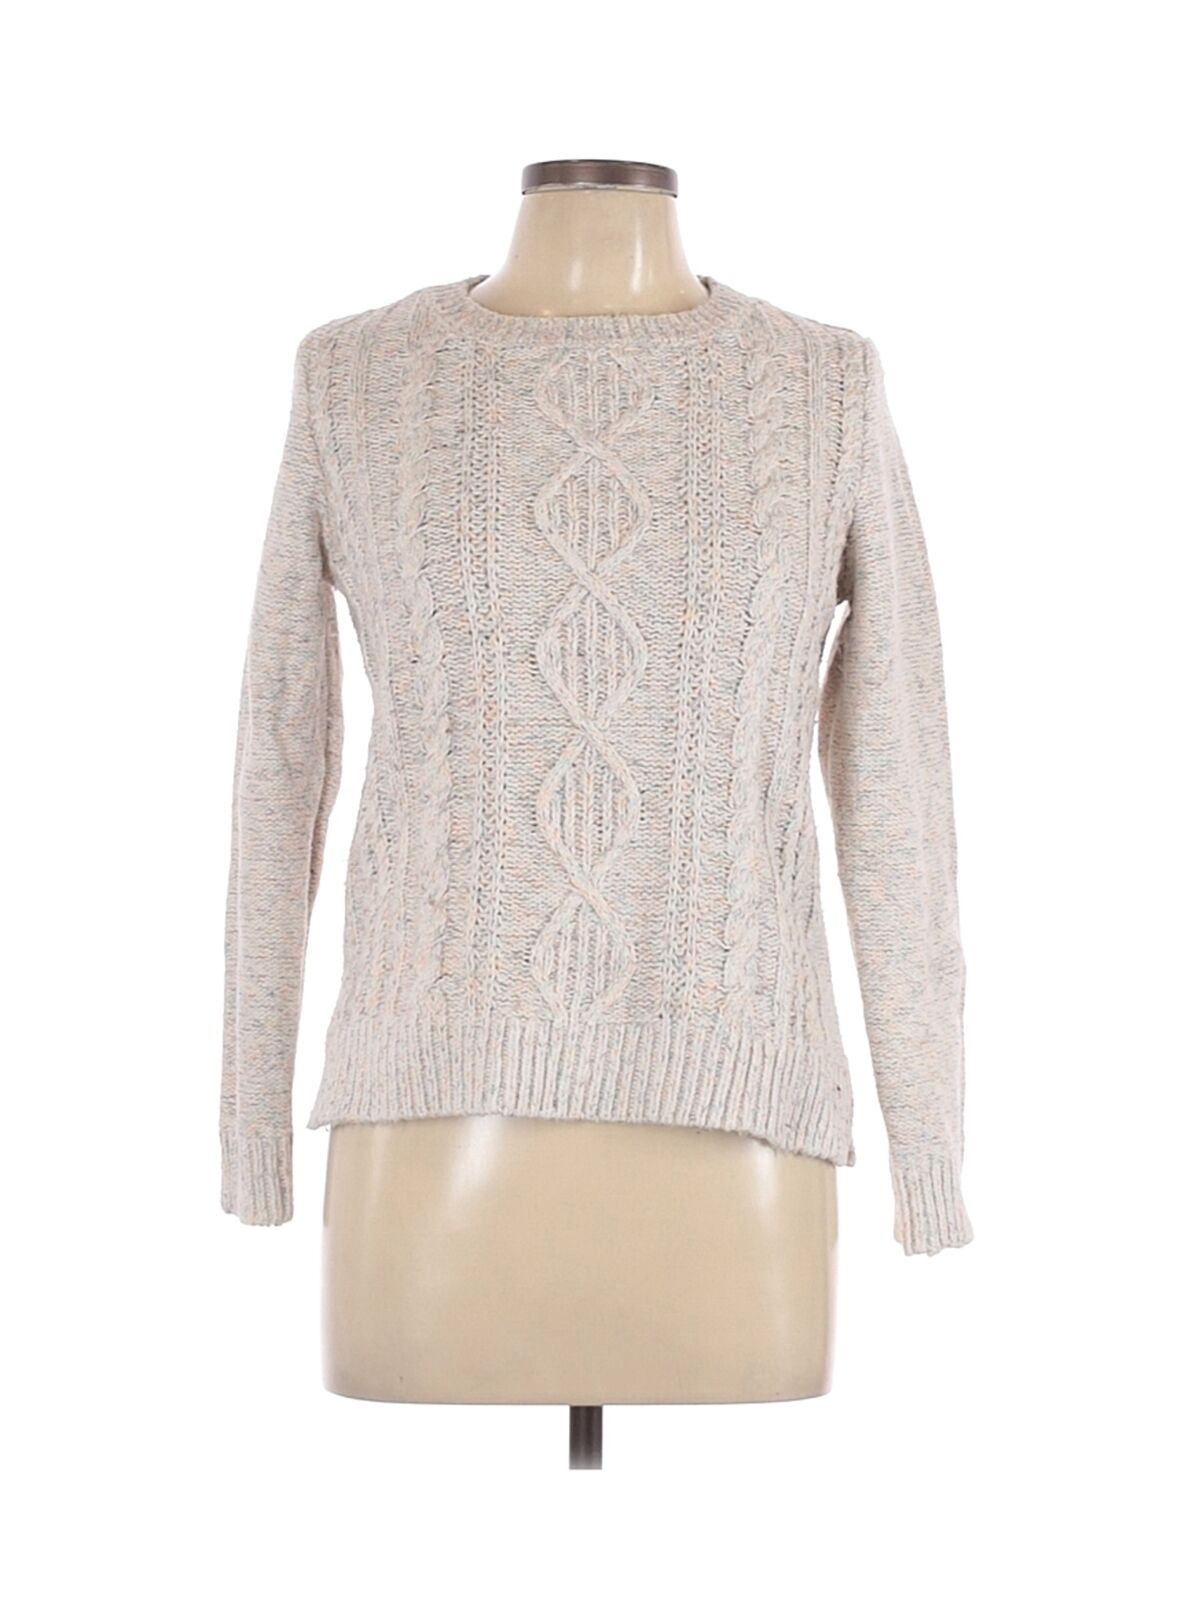 Tommy Hilfiger Women Brown Pullover Sweater M - image 1